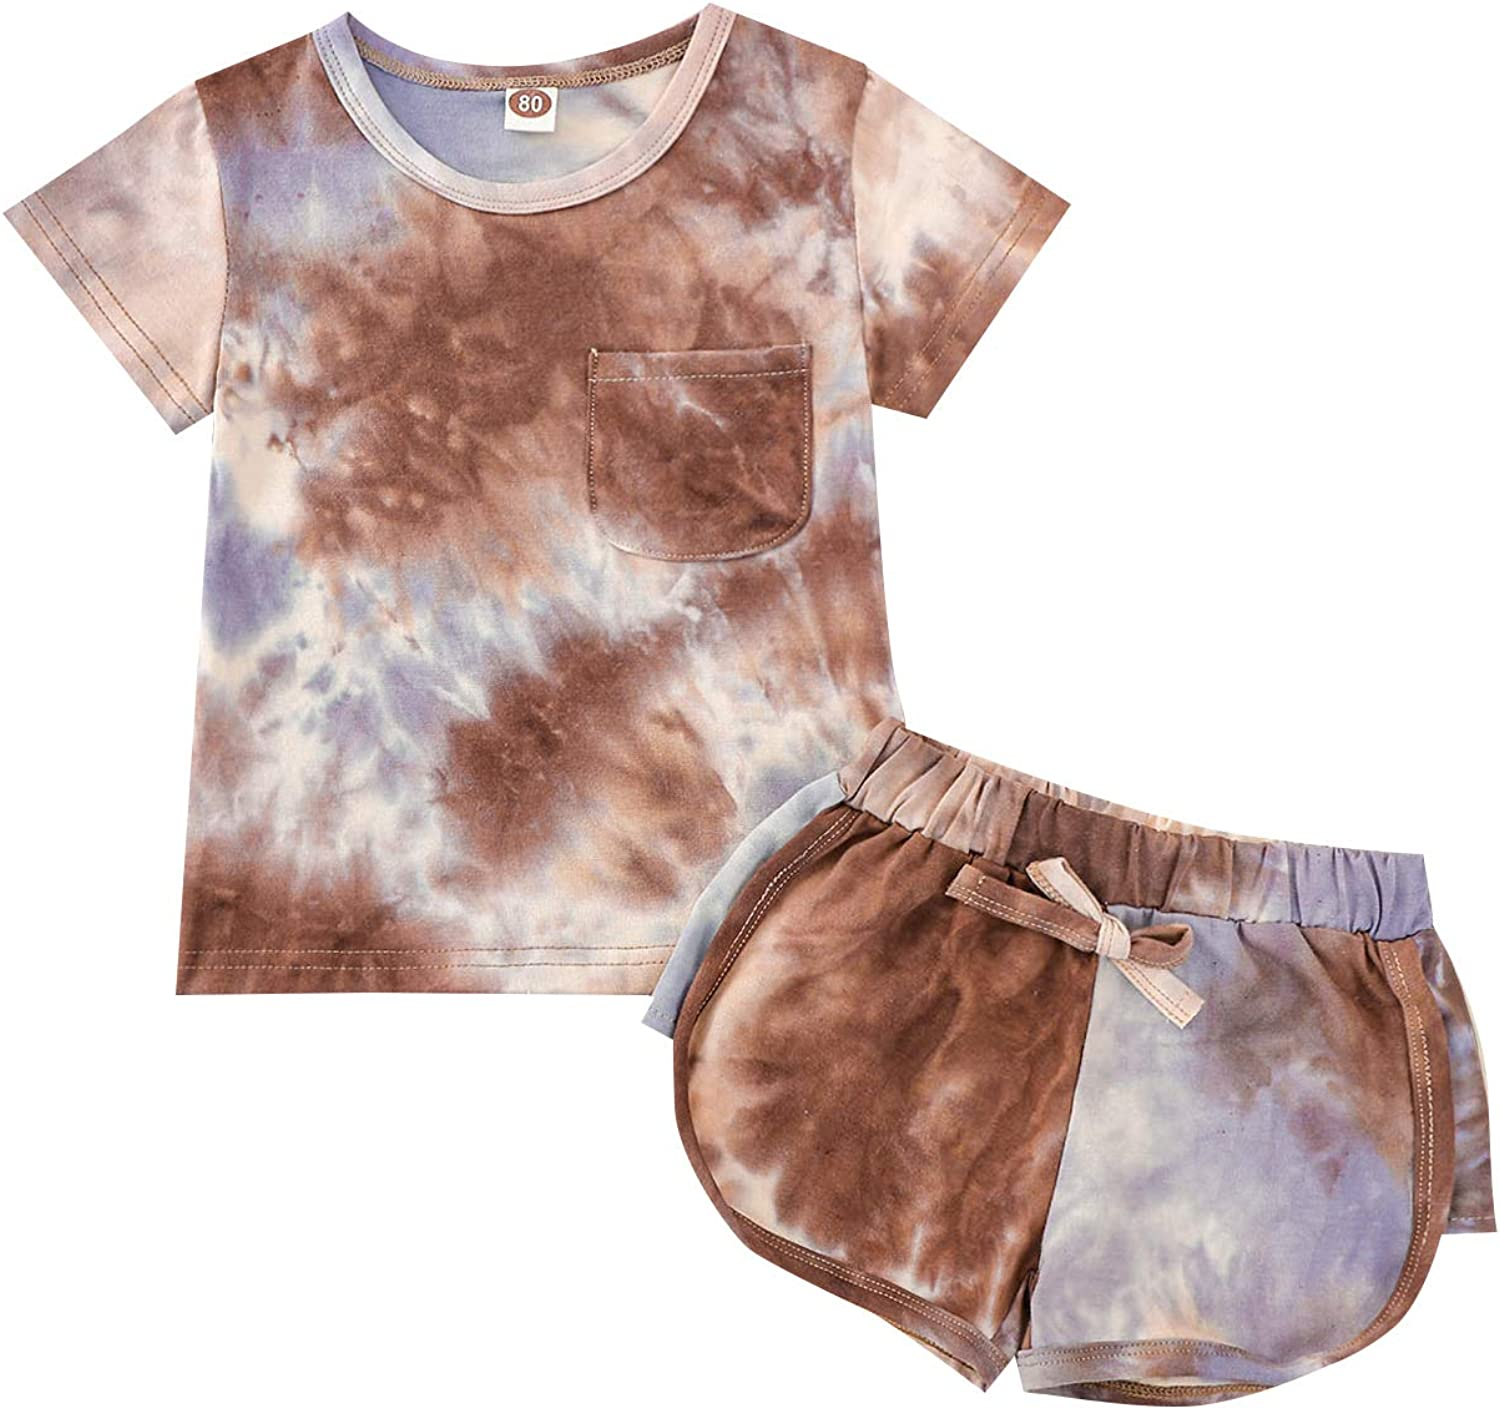 Toddler Boy Girl Outfit Short Sleeve Pocket Top T-Shirt Shorts Tie Dye Baby Summer Clothes